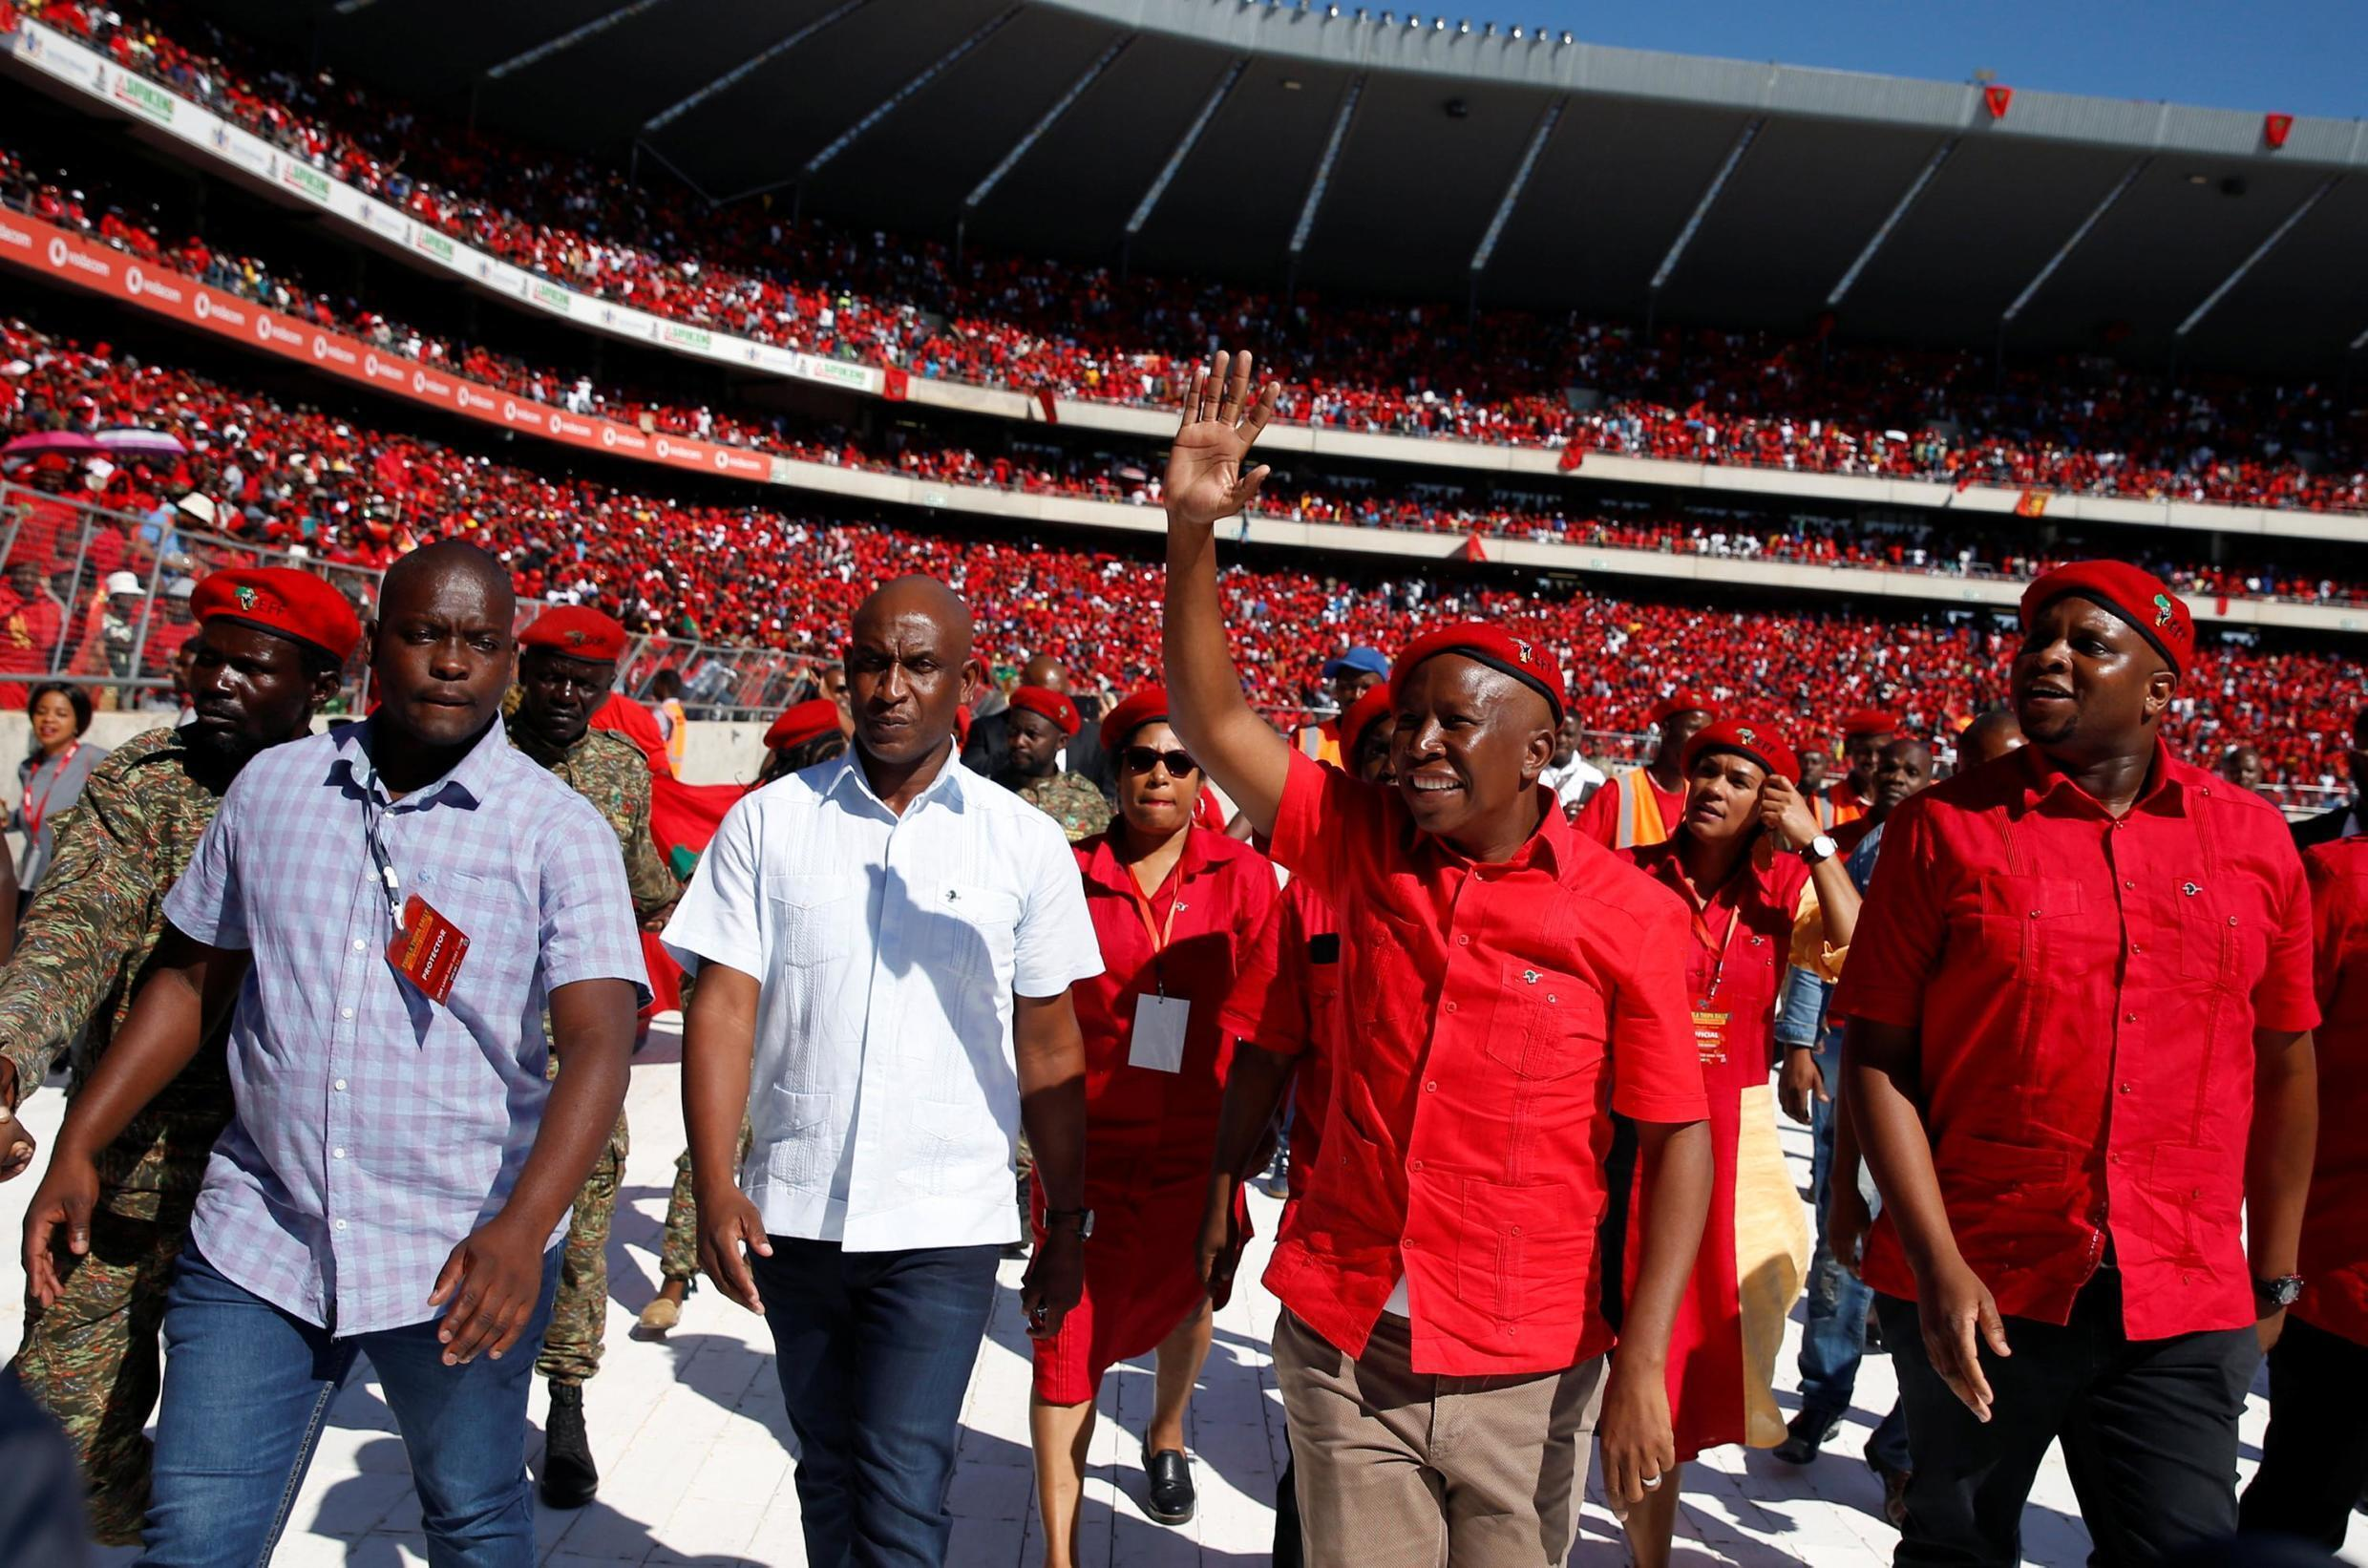 Julius Malema, leader of the Economic Freedom Fighters, greets supporters at a rally in Soweto, 5 May 2019.